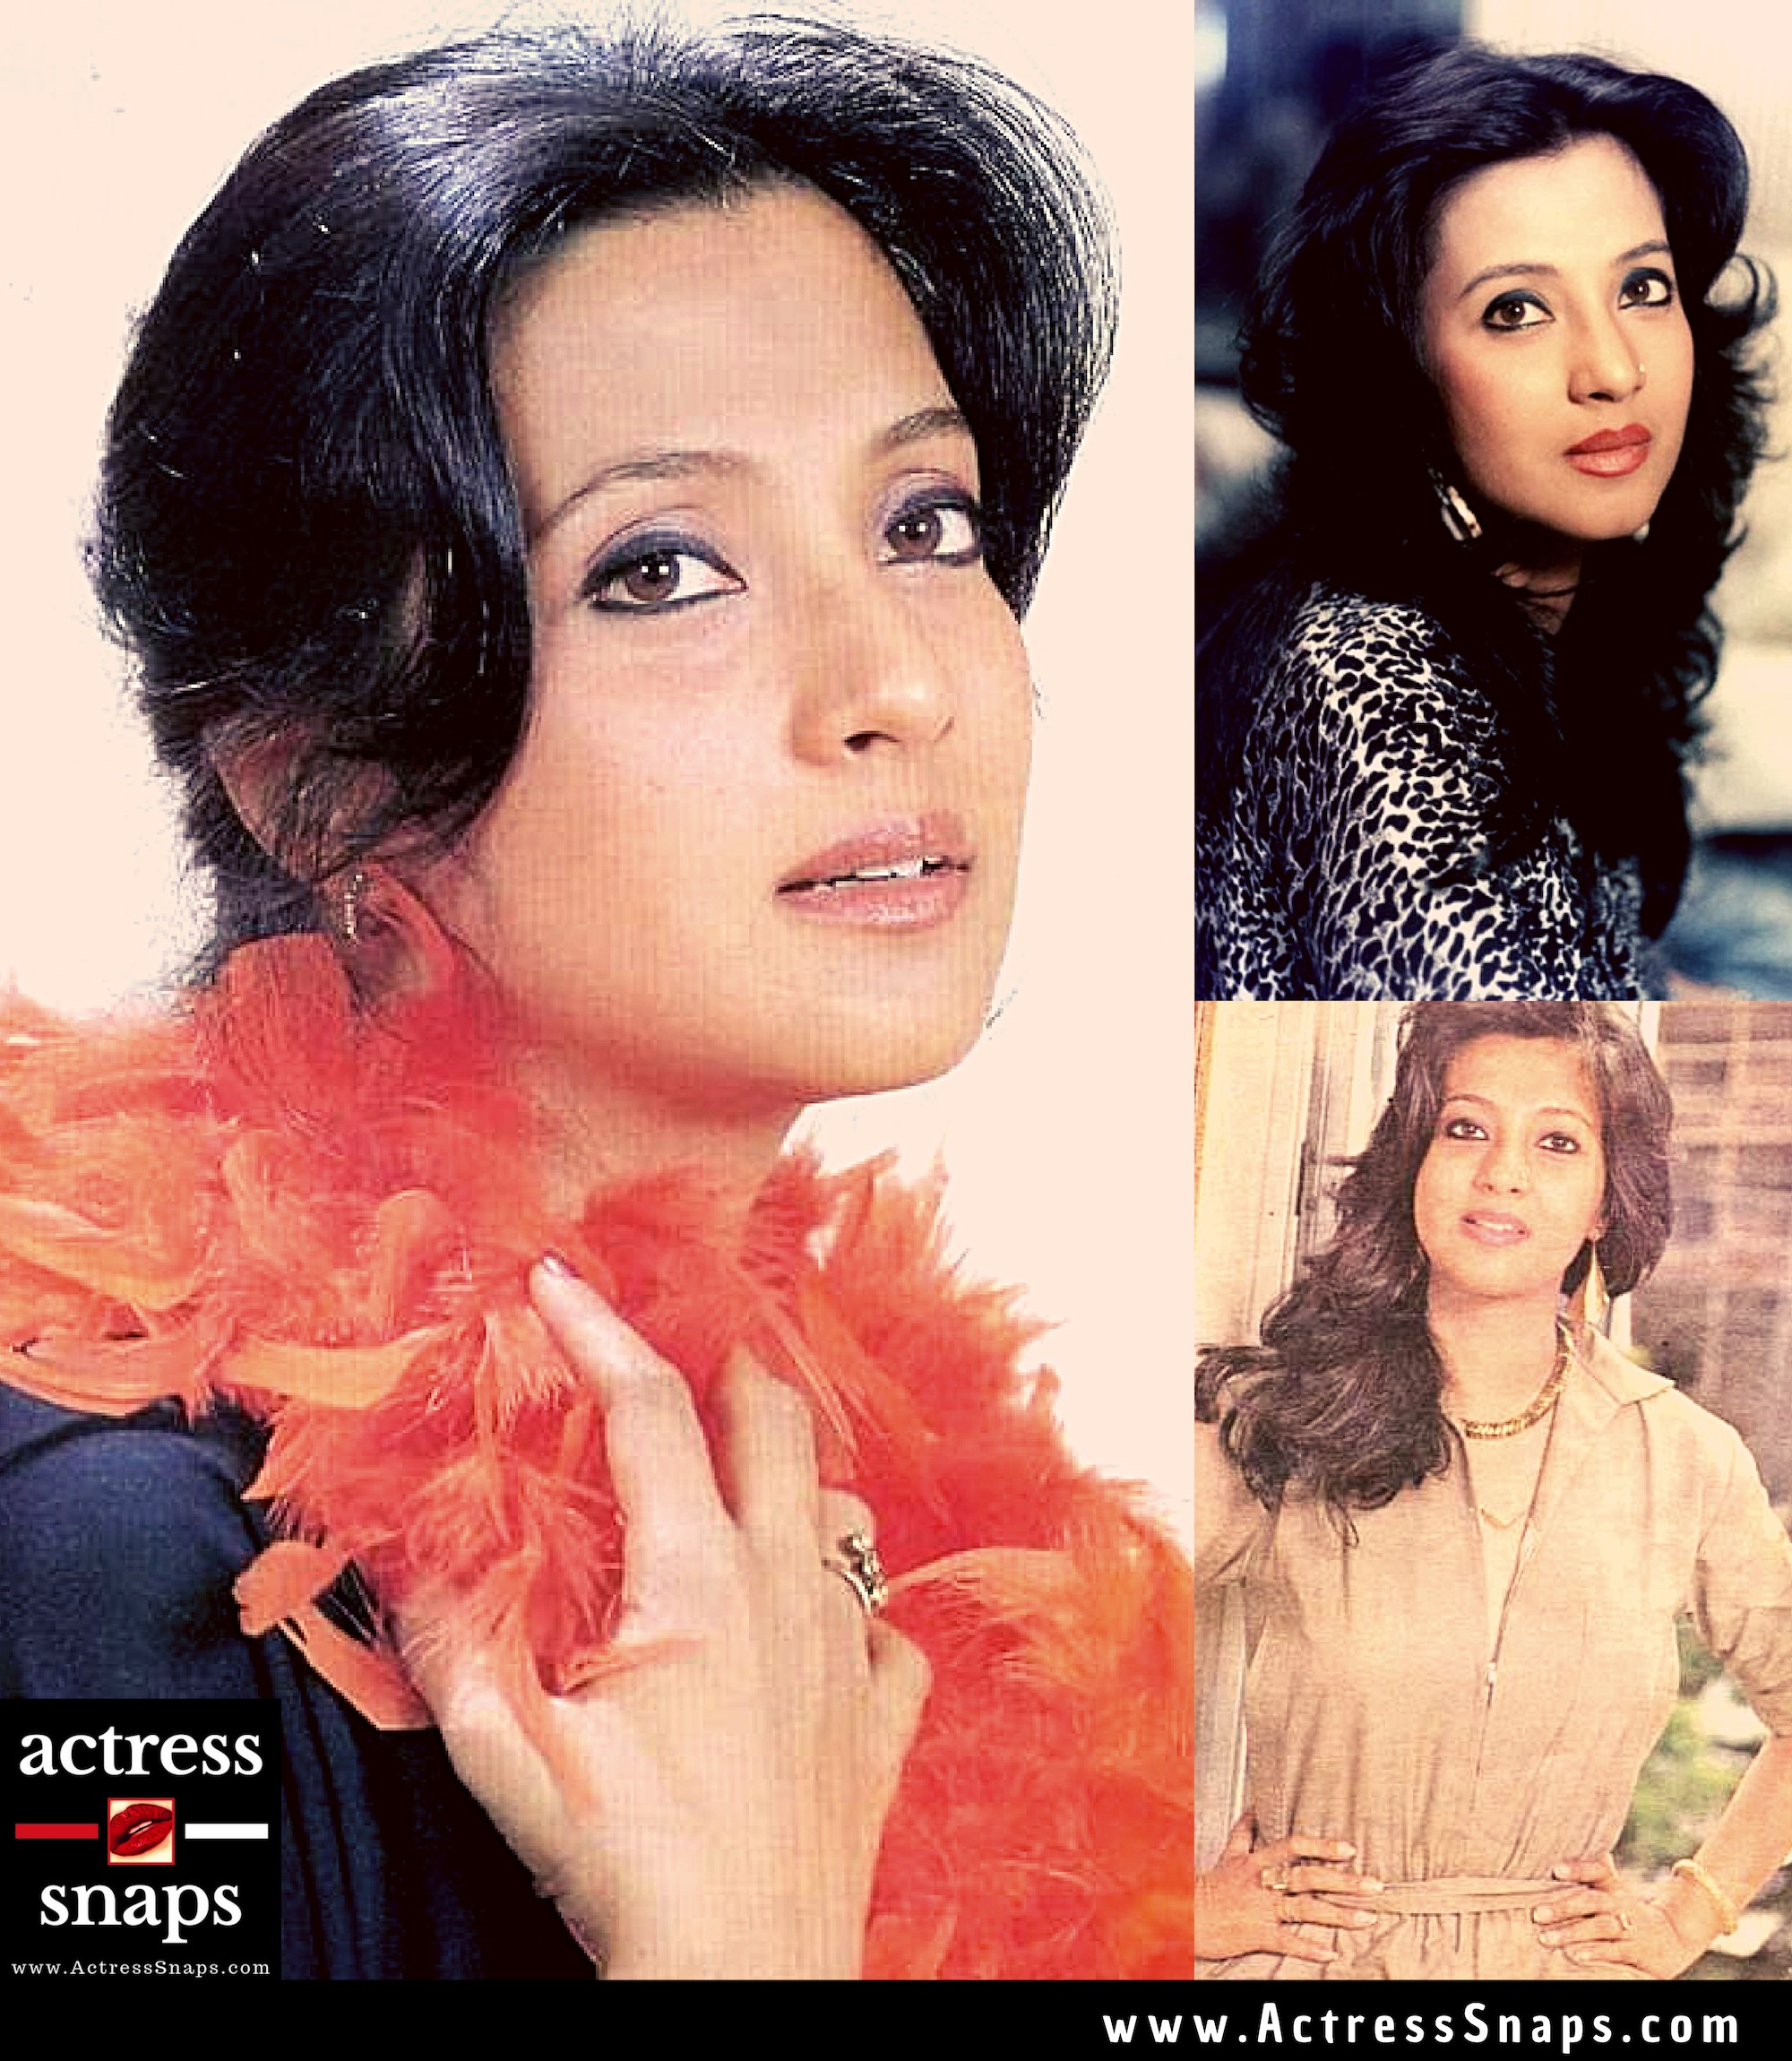 Sexy Moon Moon Sen GIFs and Photos - Sexy Actress Pictures | Hot Actress Pictures - ActressSnaps.com